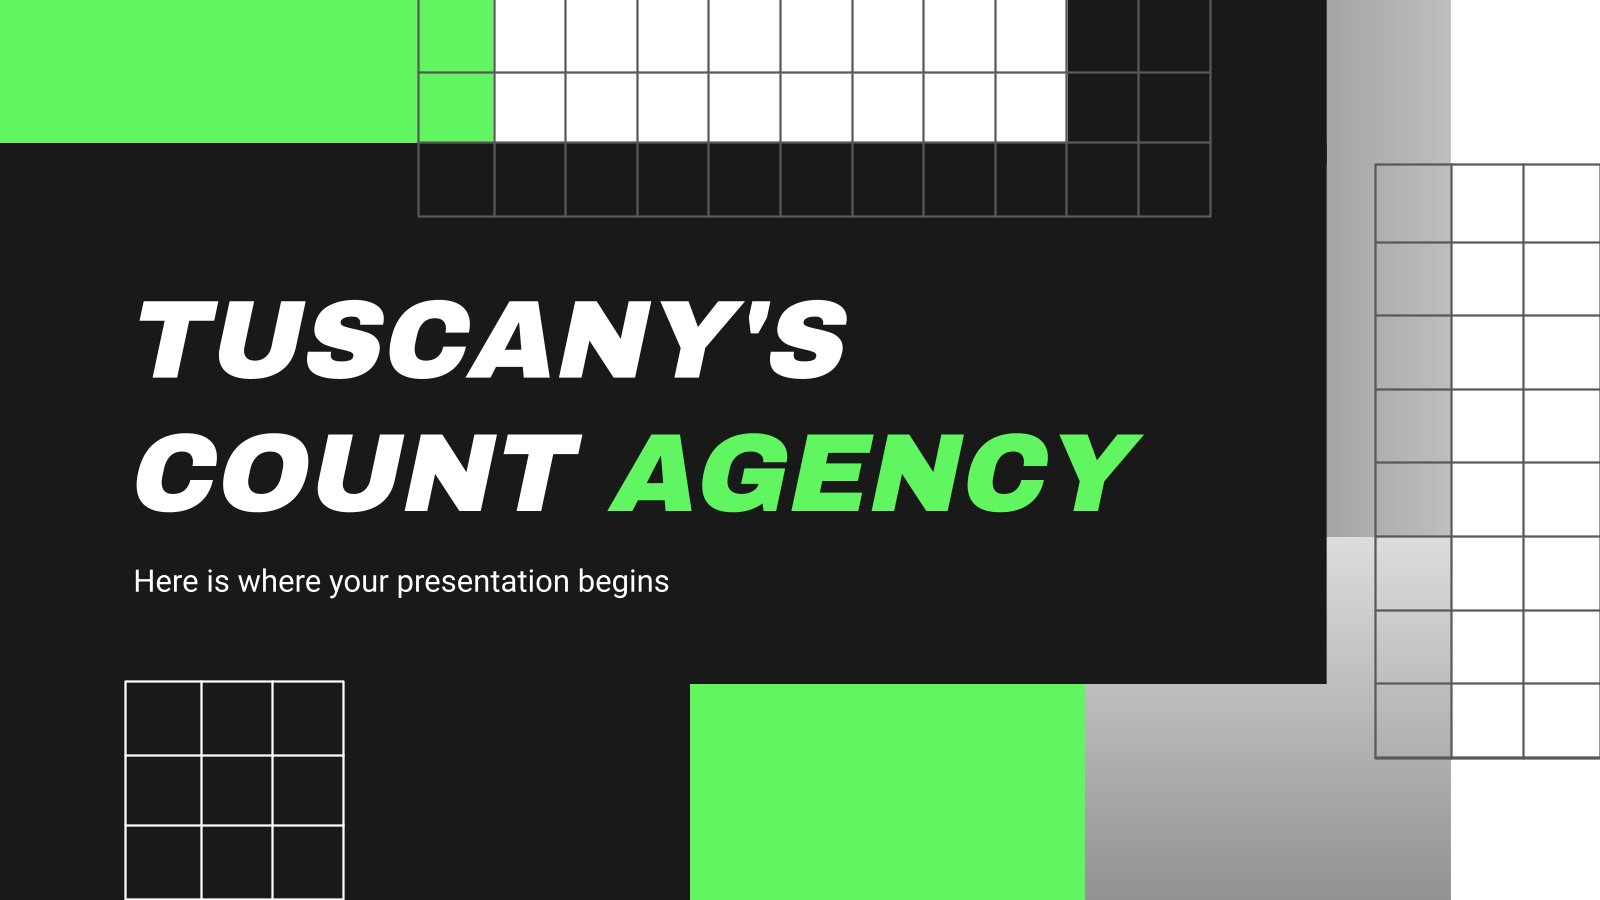 Tuscany's Count Agency presentation template